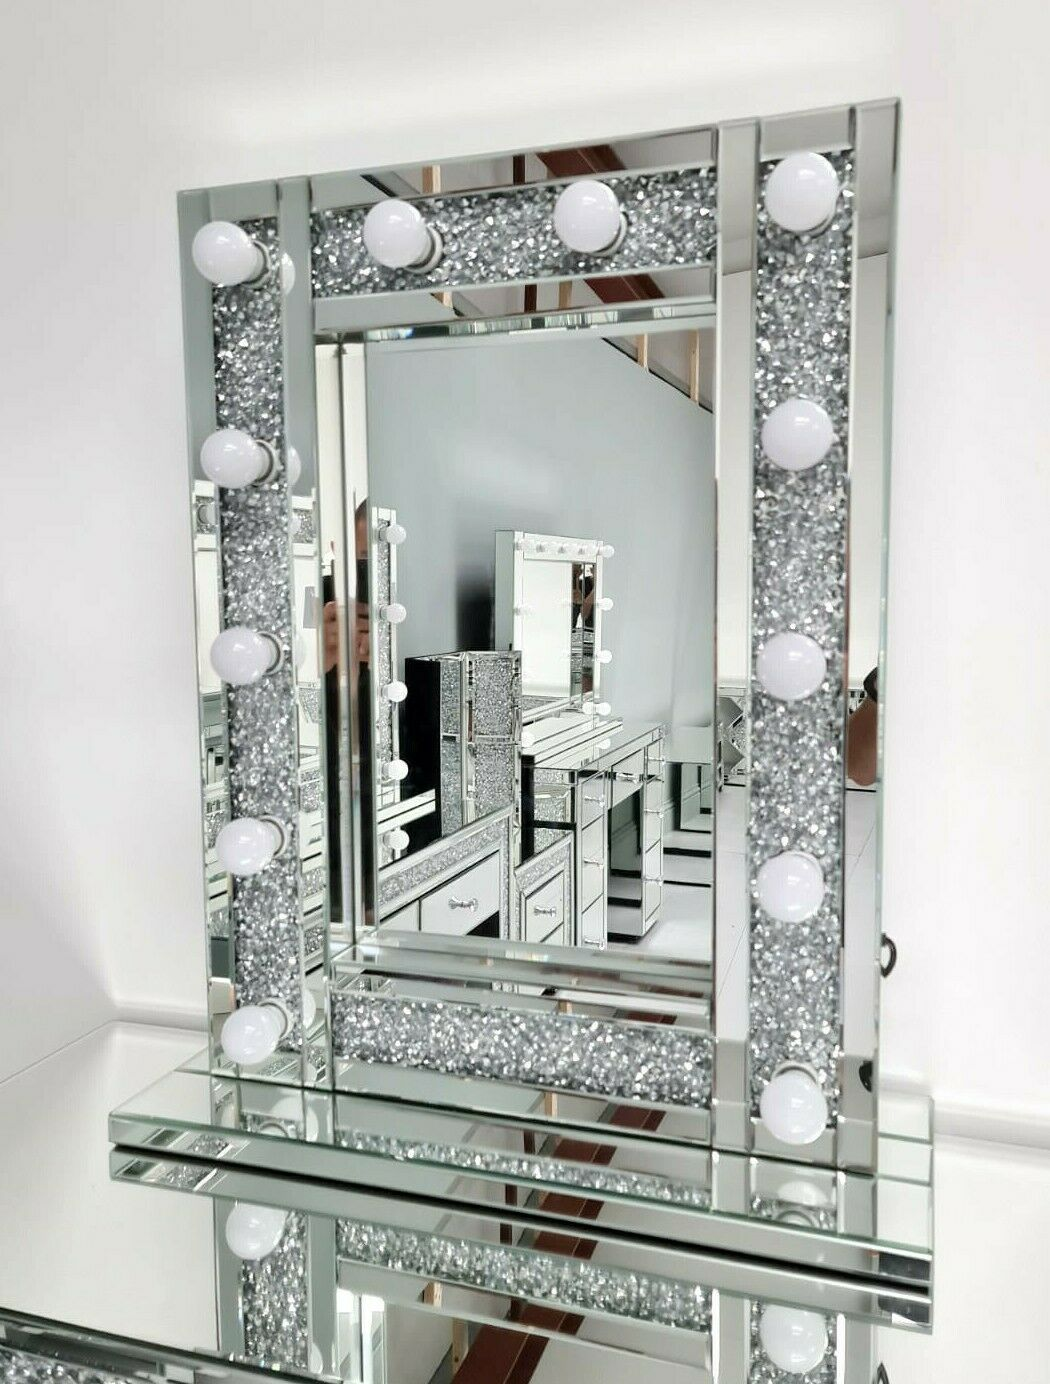 44cm Mirrored Glass Wall Shelf Drawer Floating Bedside Table